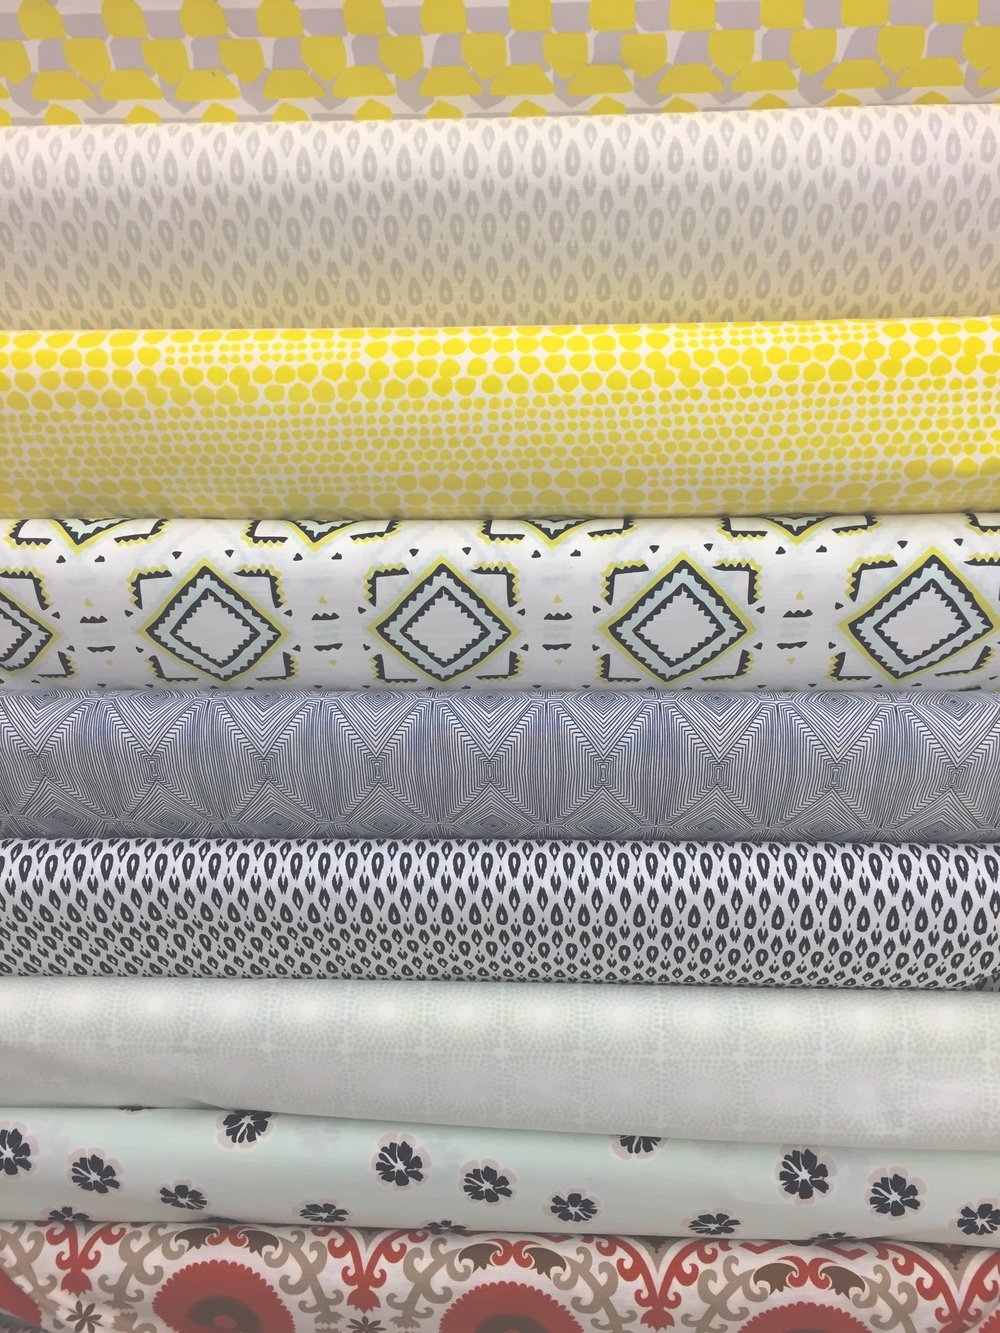 The best fabric. Beautiful colors and patterns!